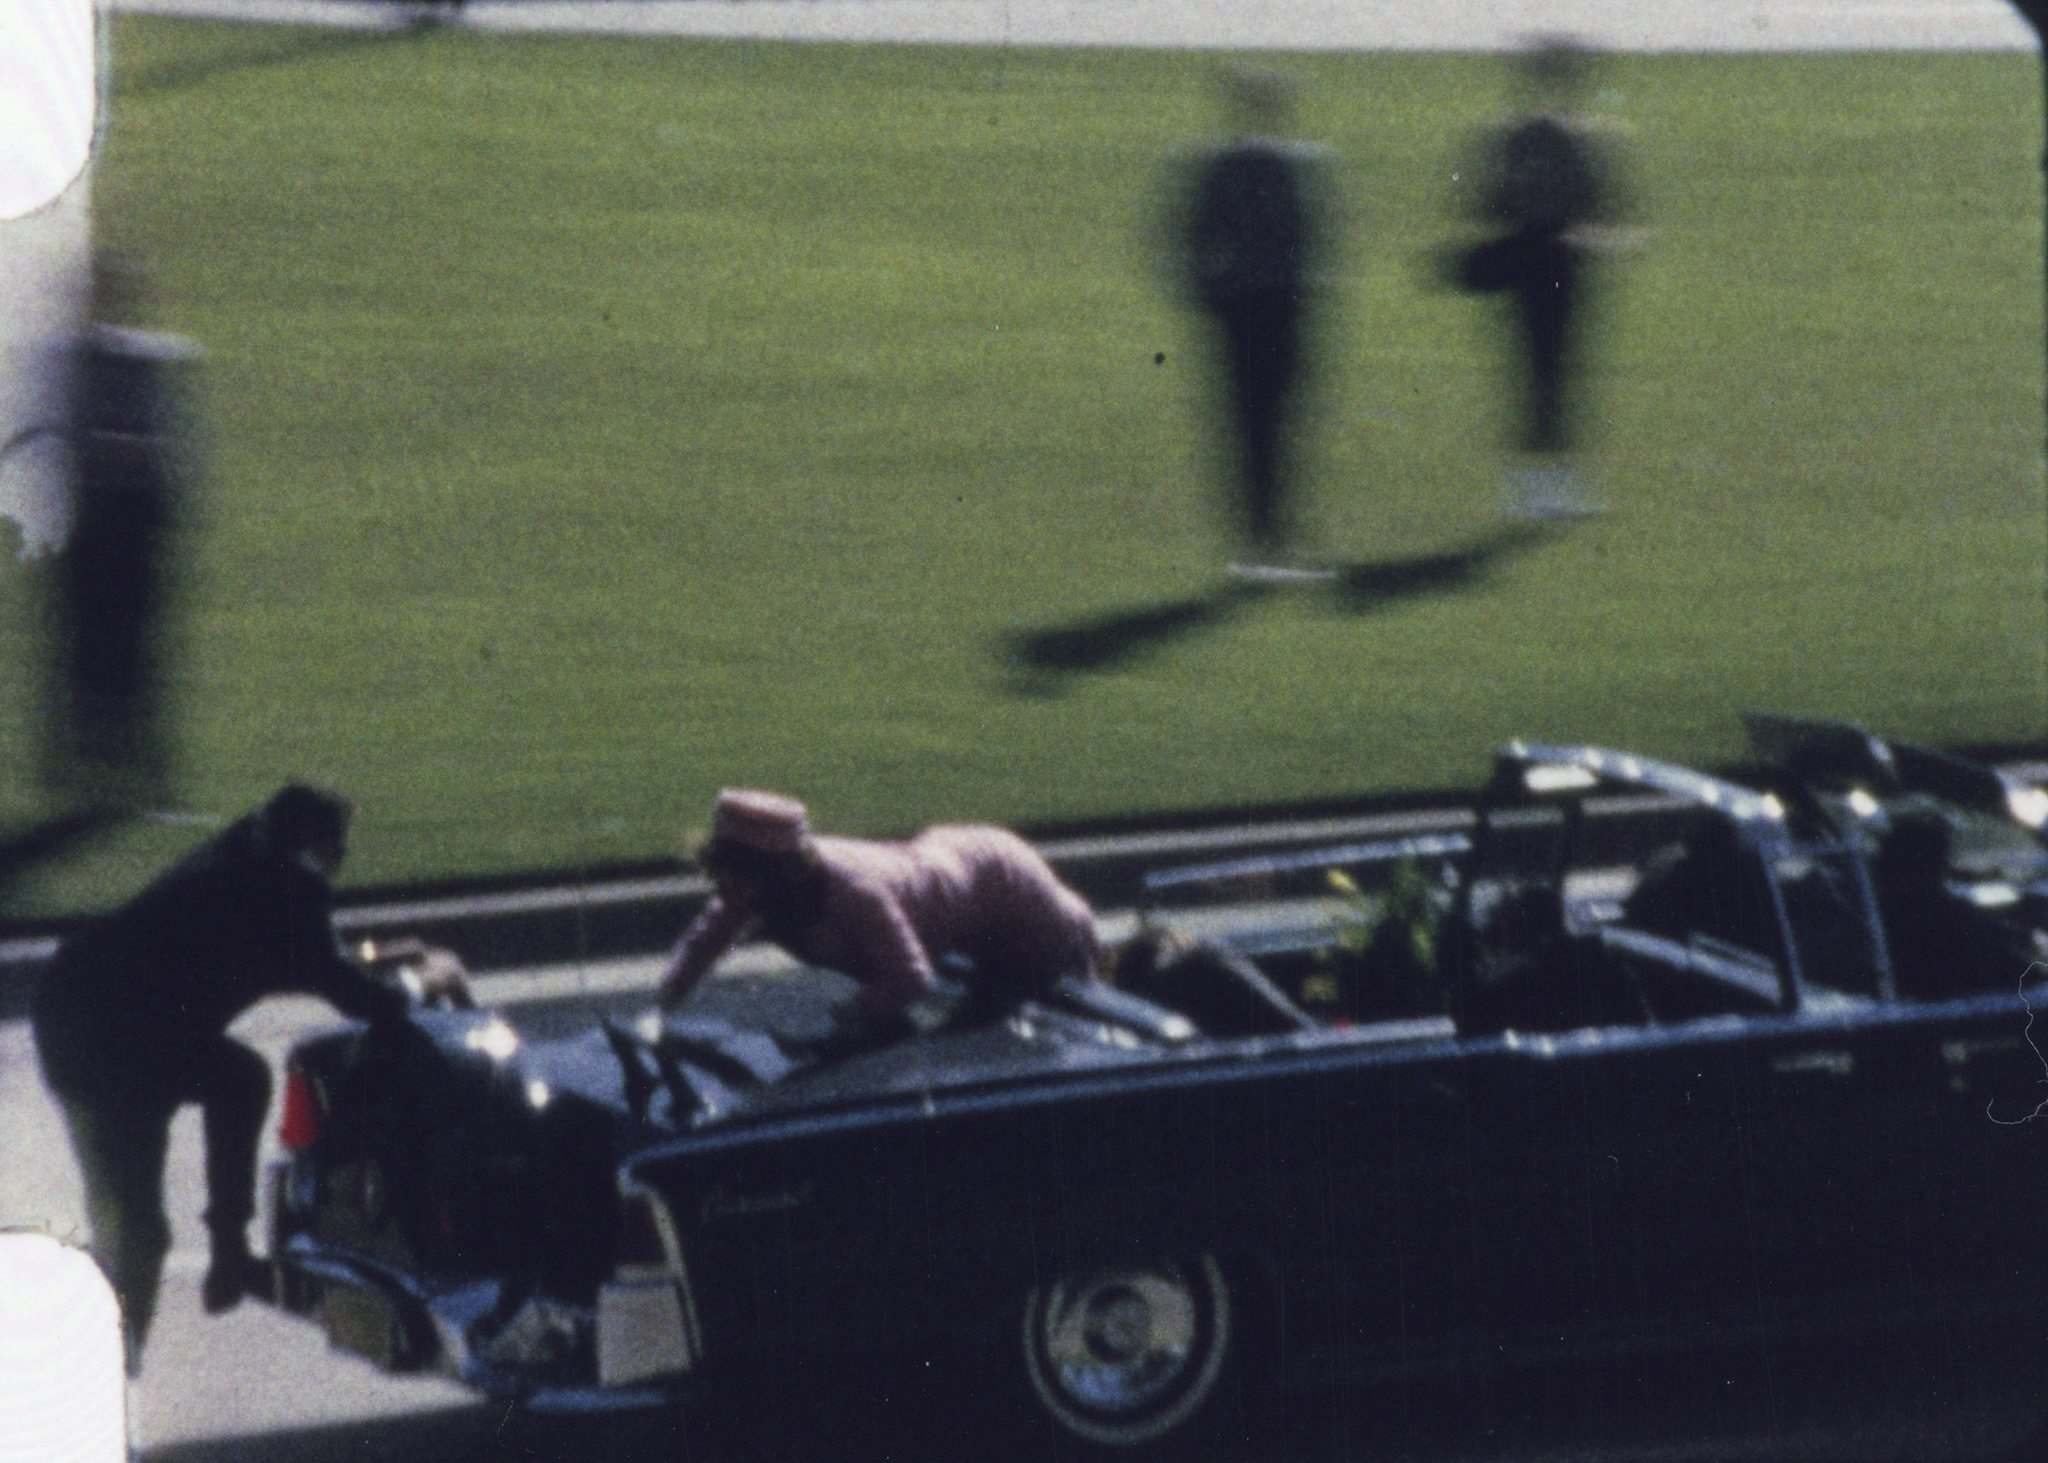 Zapruder Film &#169;, The Sixth Floor Museum at Dealey Plaza</p><p>In a still from Abraham Zapruder&rsquo;s 8mm film, Secret Service agent Clint Hill (left) and Jacqueline Kennedy are seen scrambling after then-president John F. Kennedy was shot.</p>